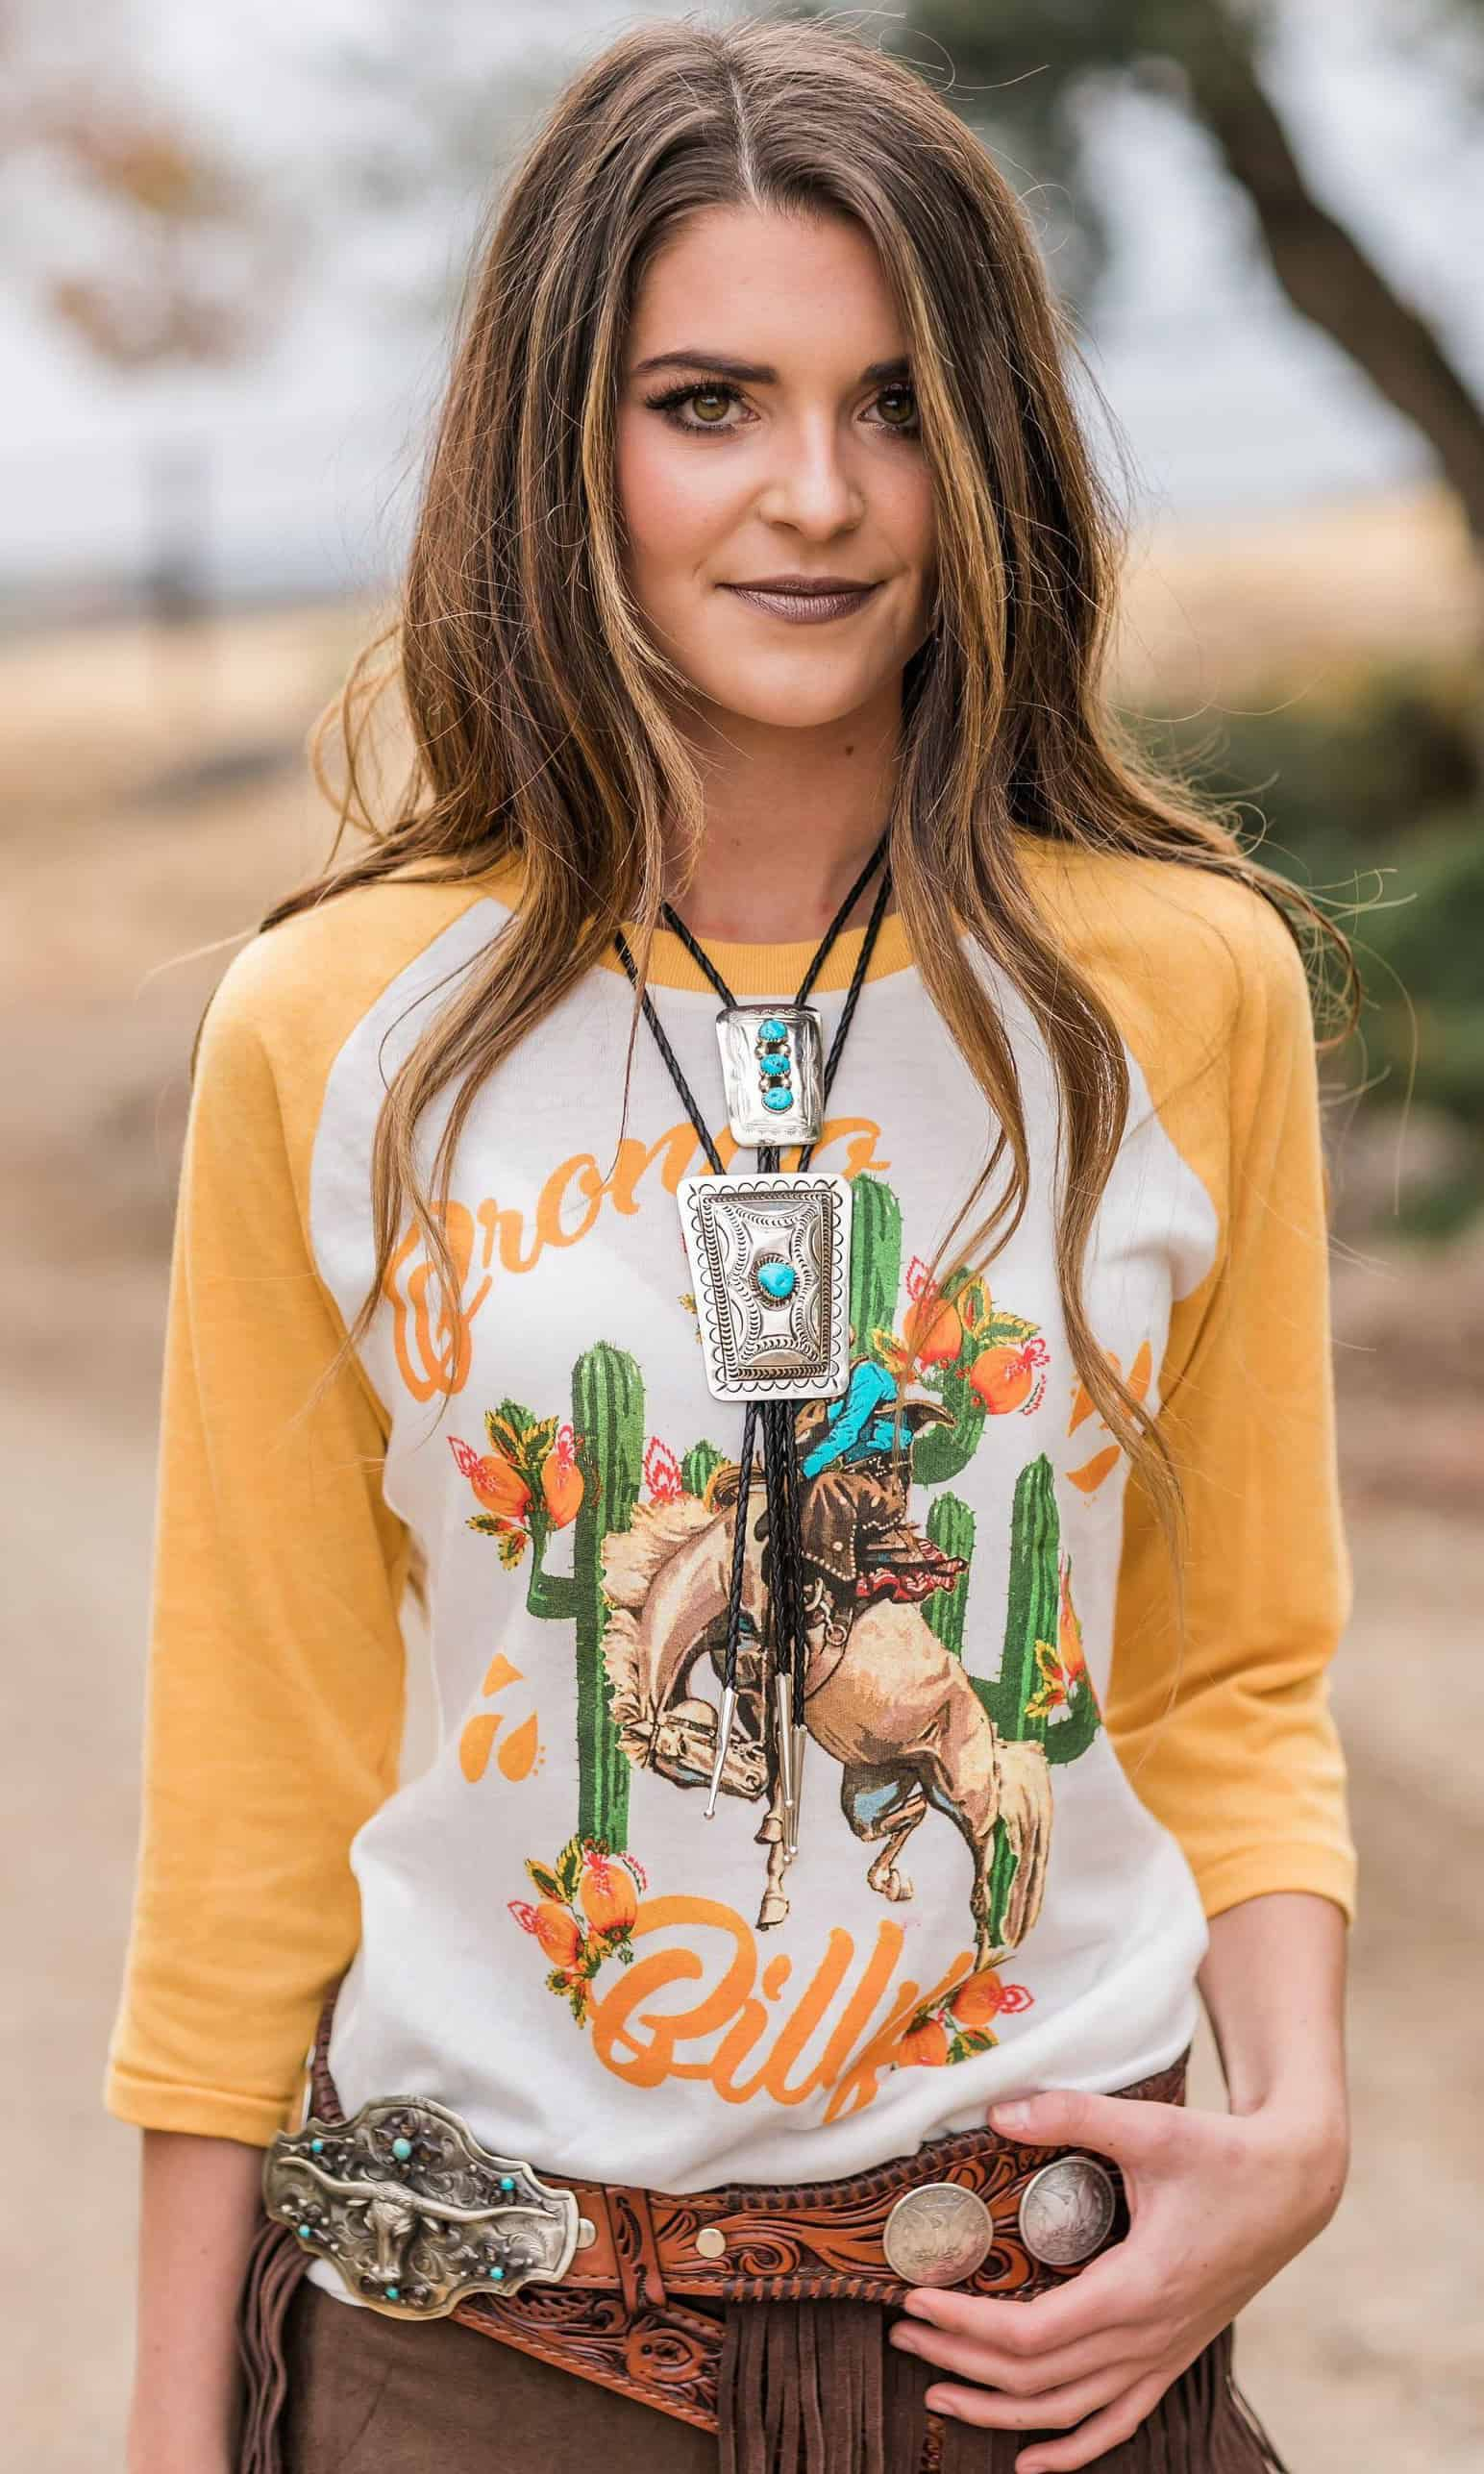 rodeo quincy bronco billy tshirt cowgirl magazine